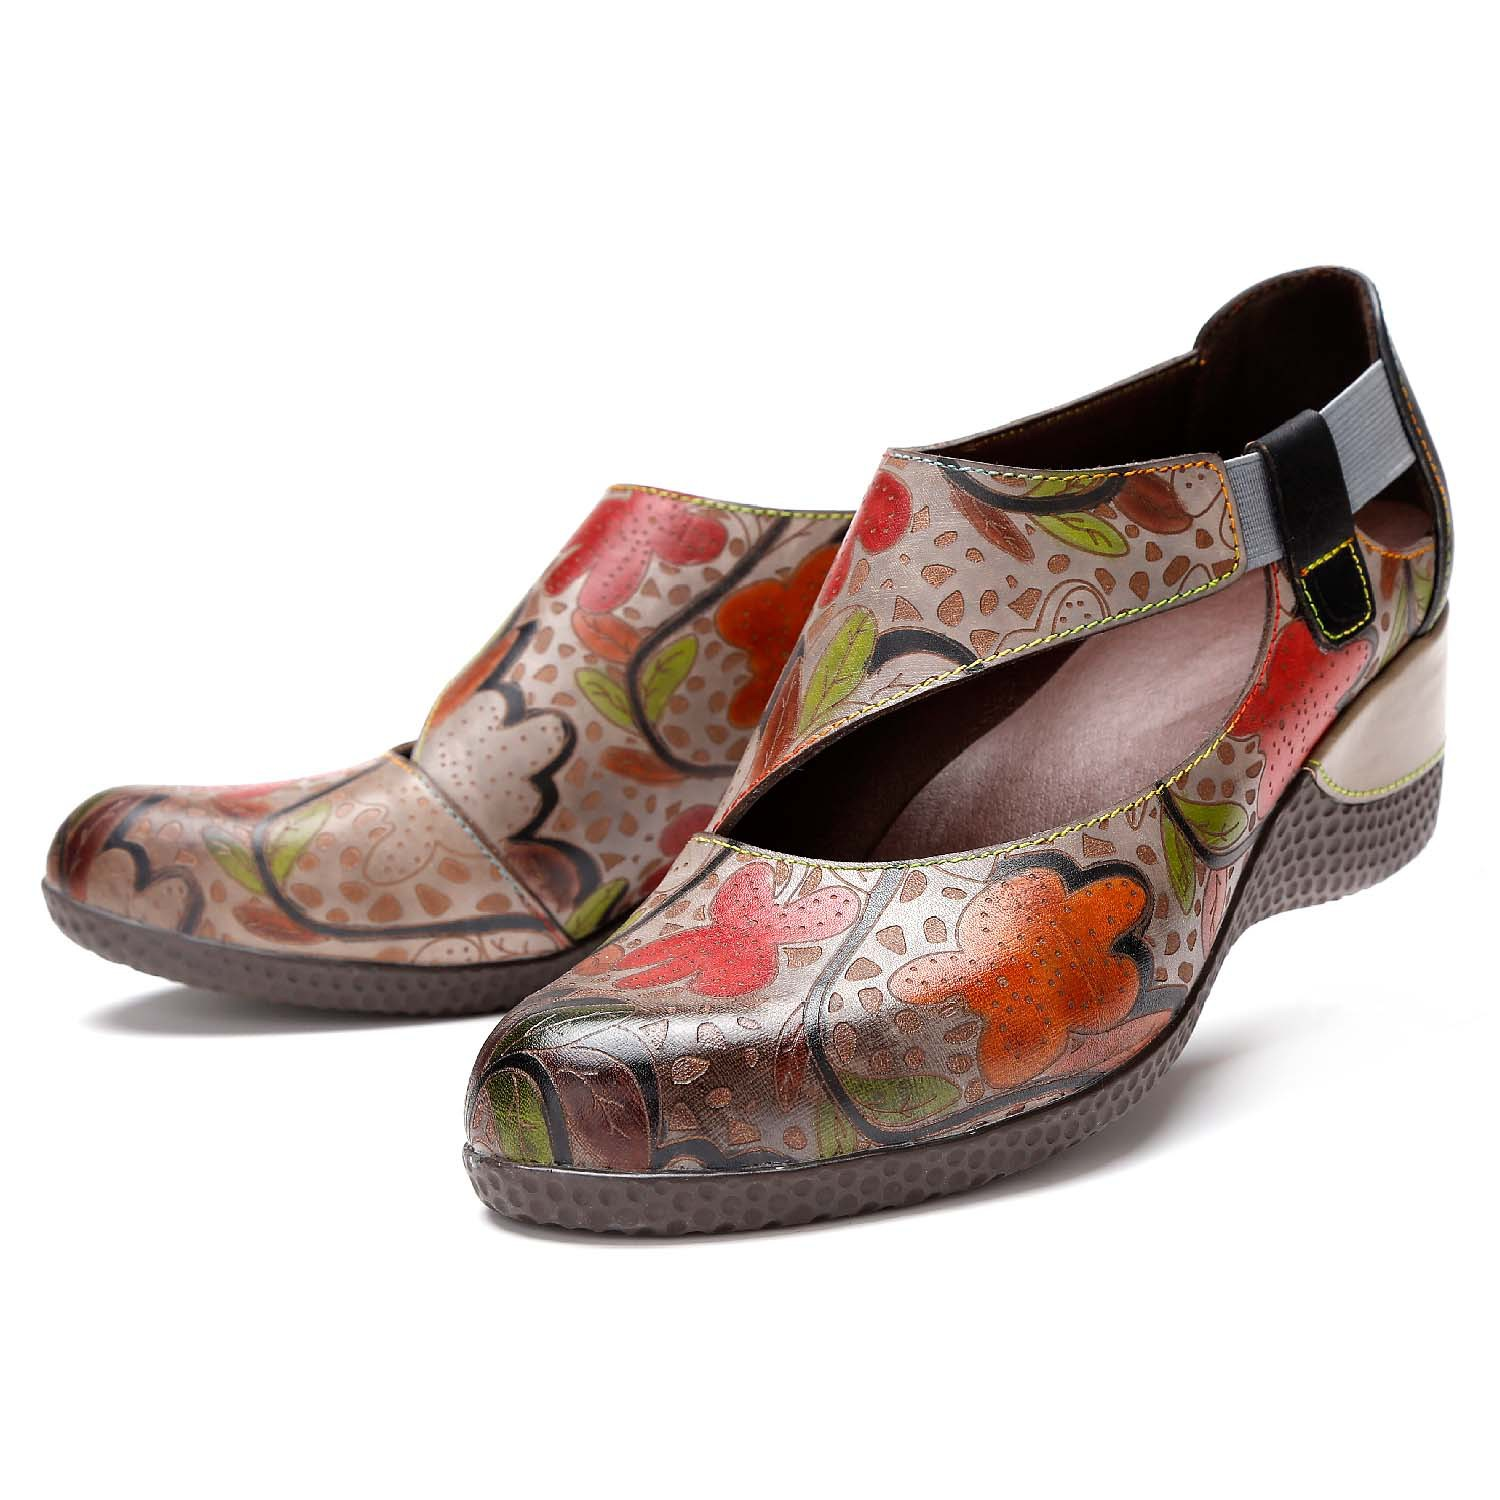 YLQP New Arrival 2018 Women Autumn Genuine Leather High Heel Shoes Handmade Vintage Flower Print Wedges Shoes Woman Pumps Loafer bfdadi 2018 new arrival hat genuine